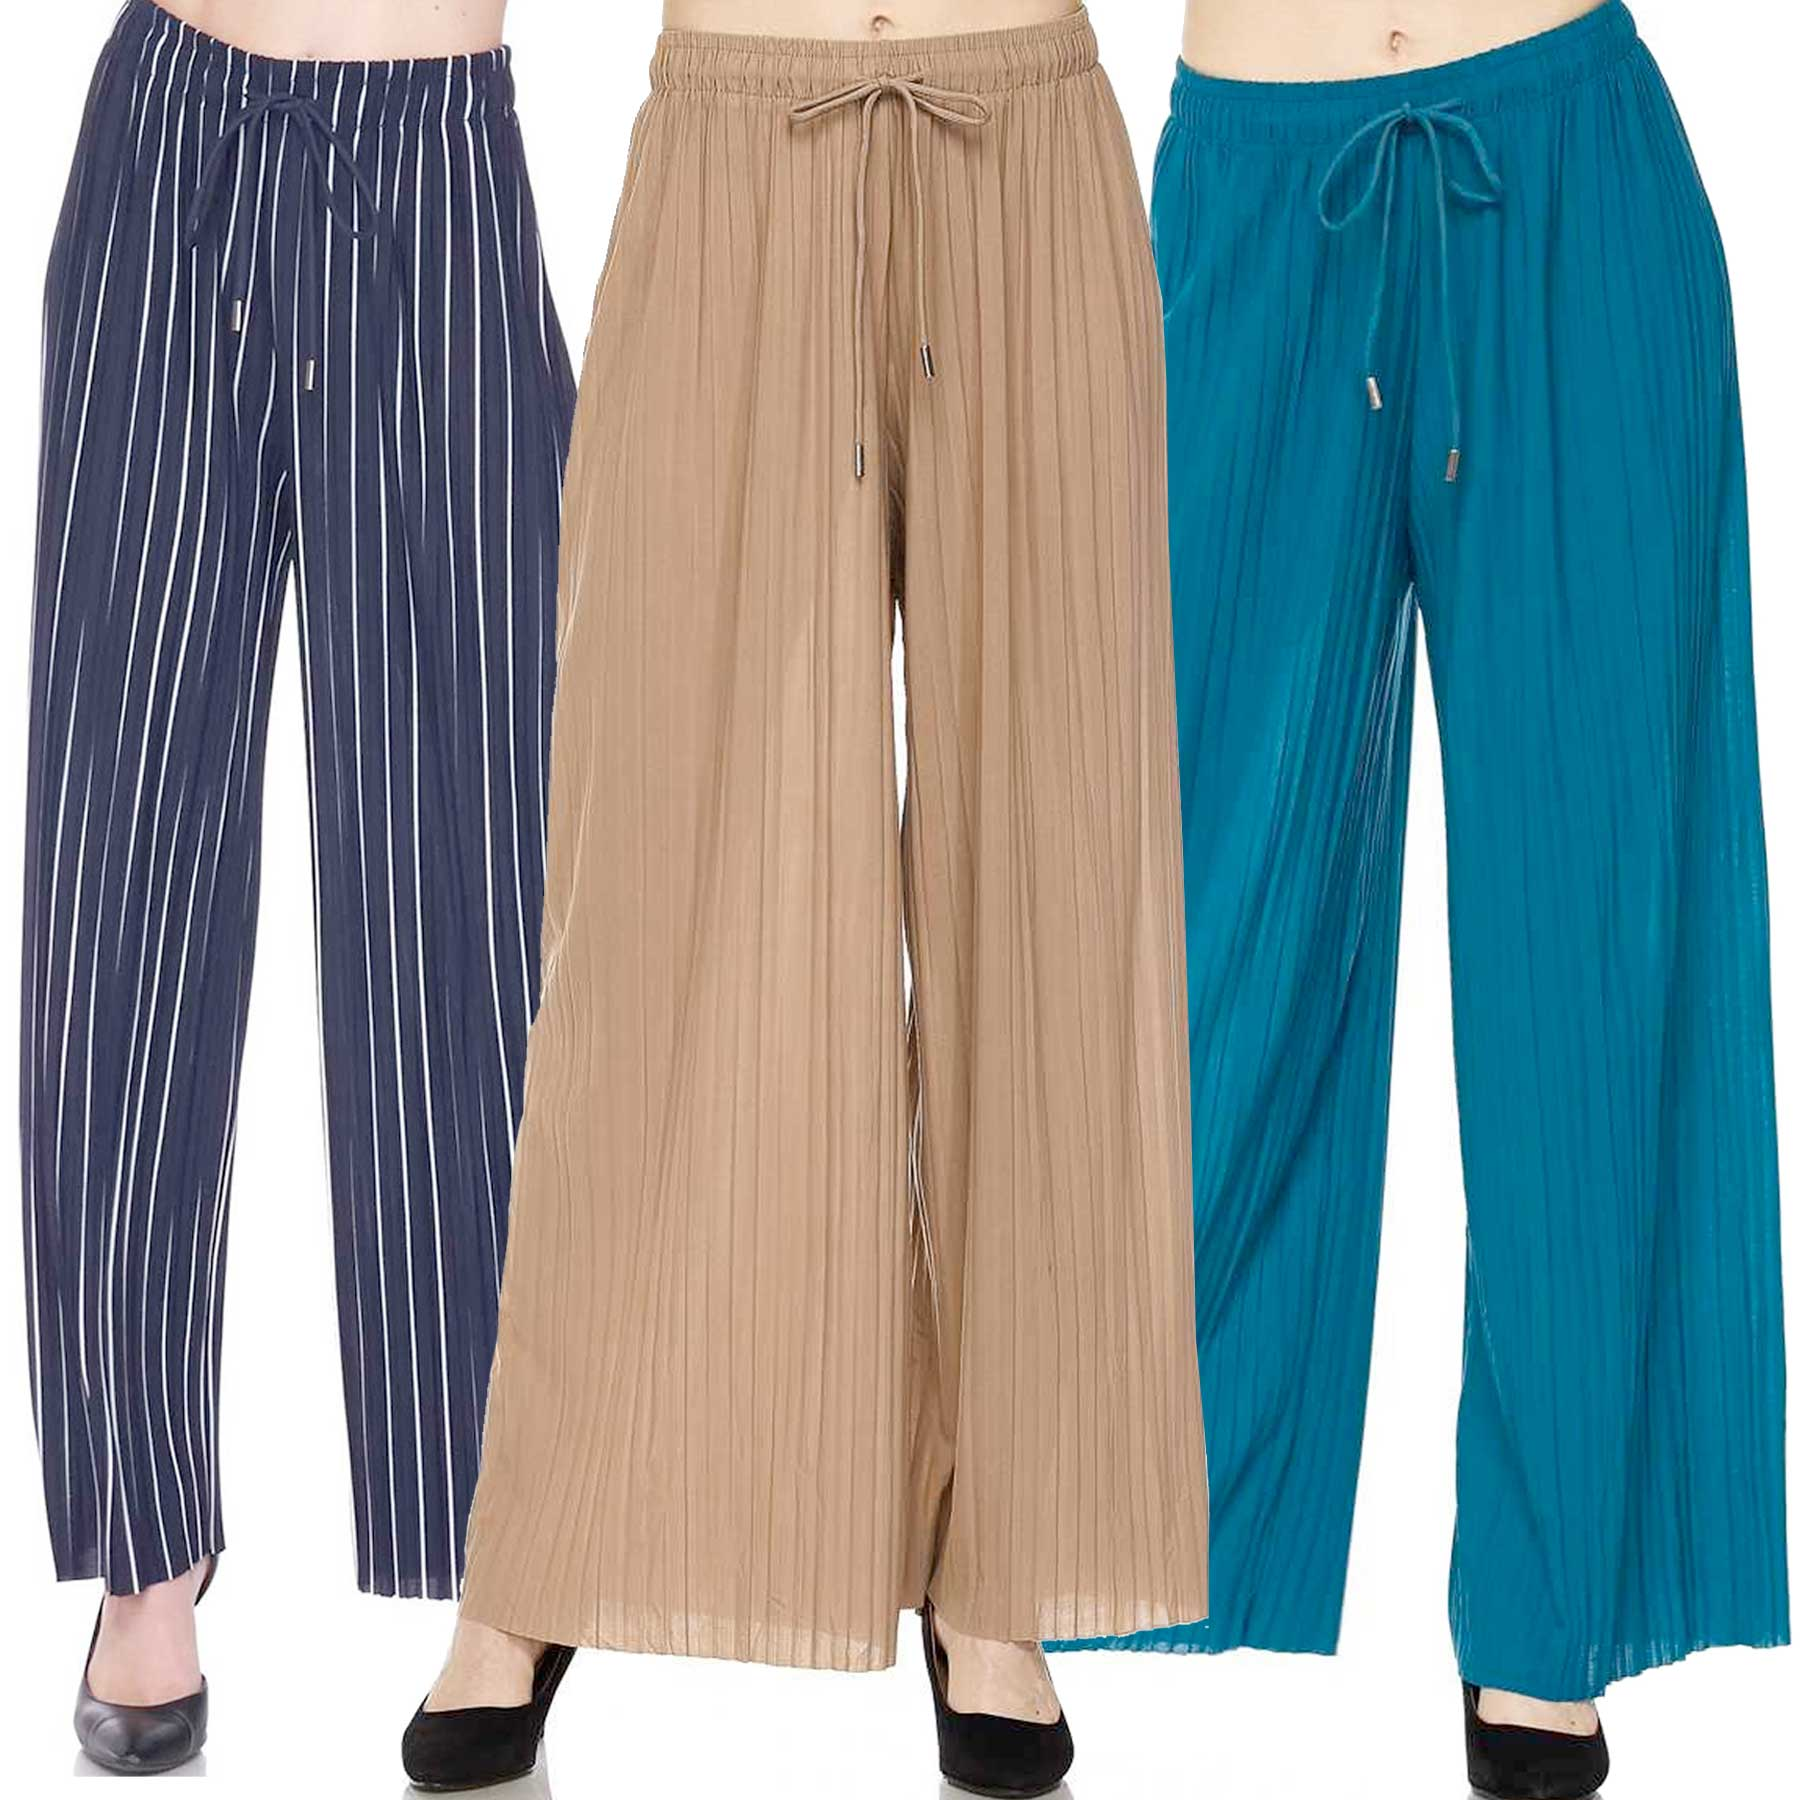 Pleated Wide Leg Pants - Georgette 902